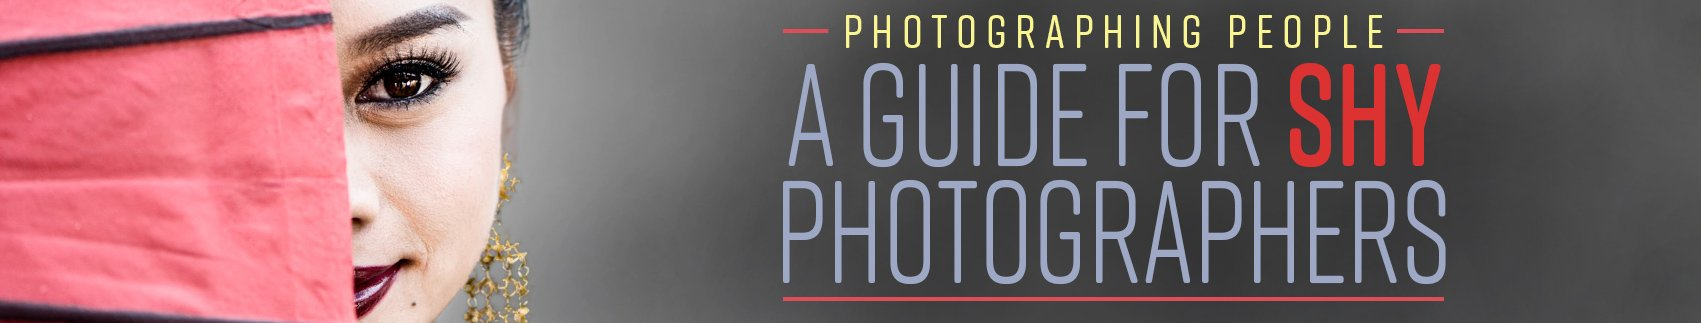 A Guide for shy photographers webpage banner